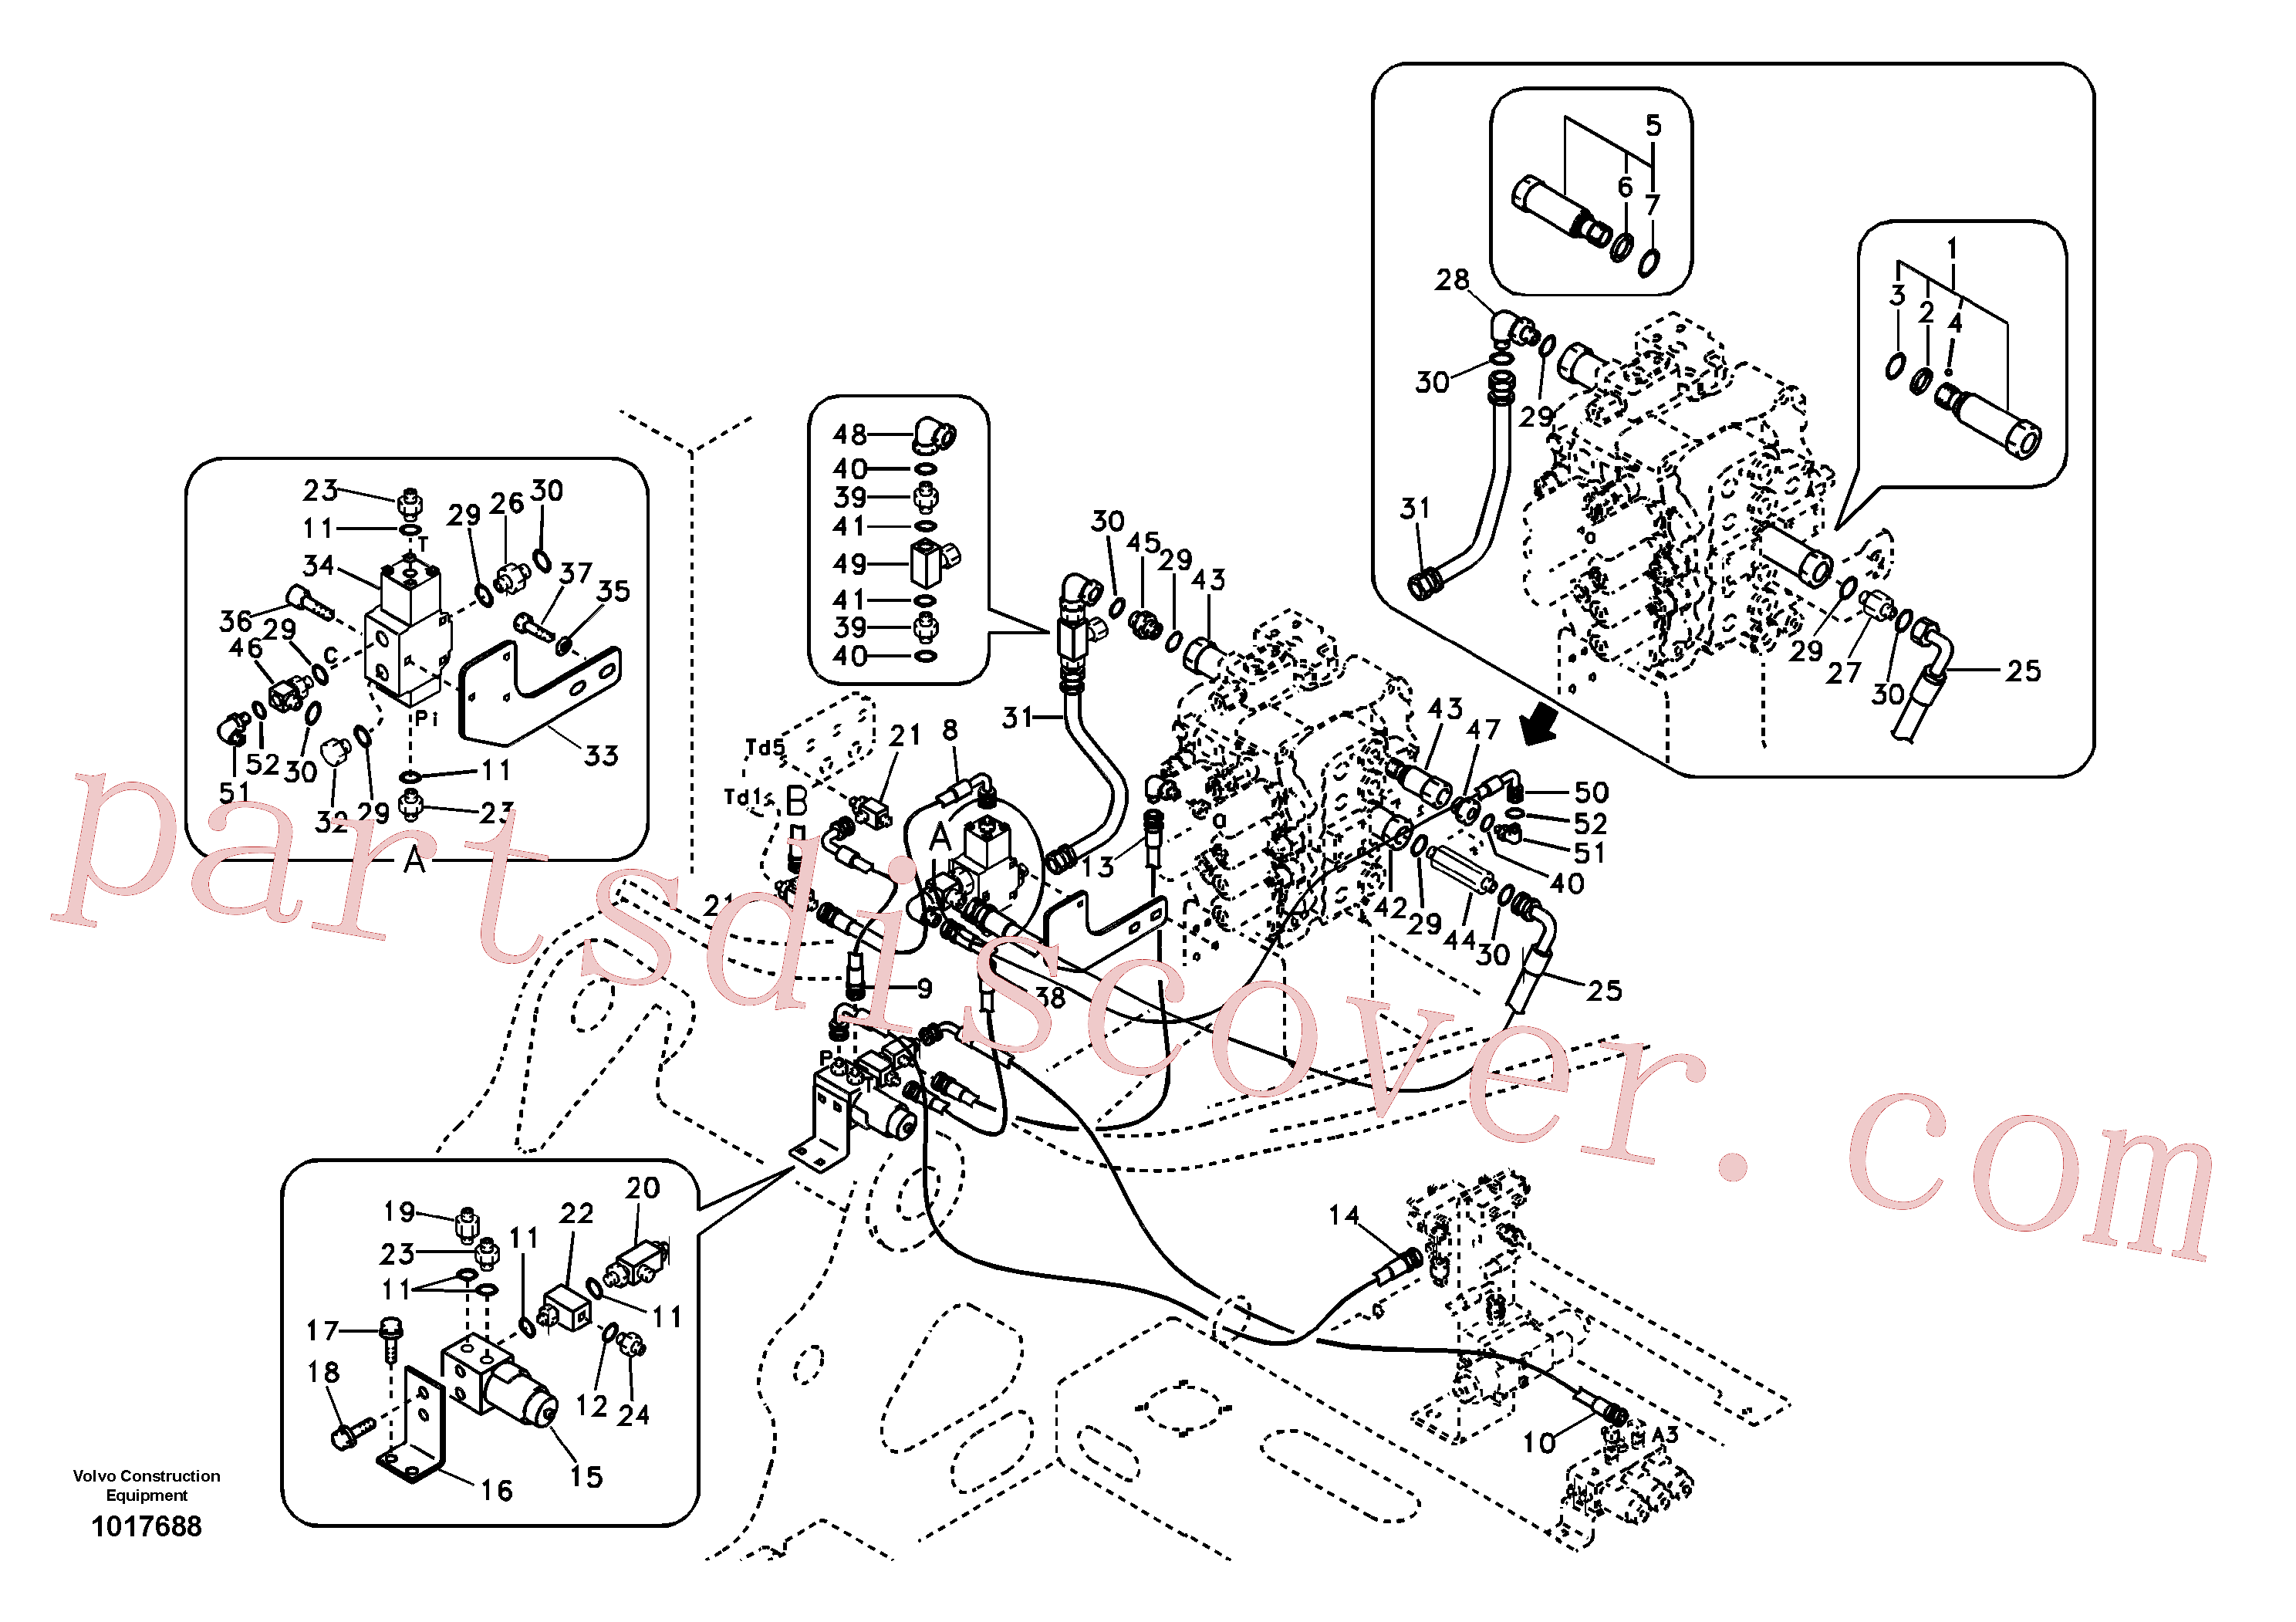 SA7270-11220 for Volvo Working hydraulic, hammer and shear for 2nd pump flow(1017688 assembly)